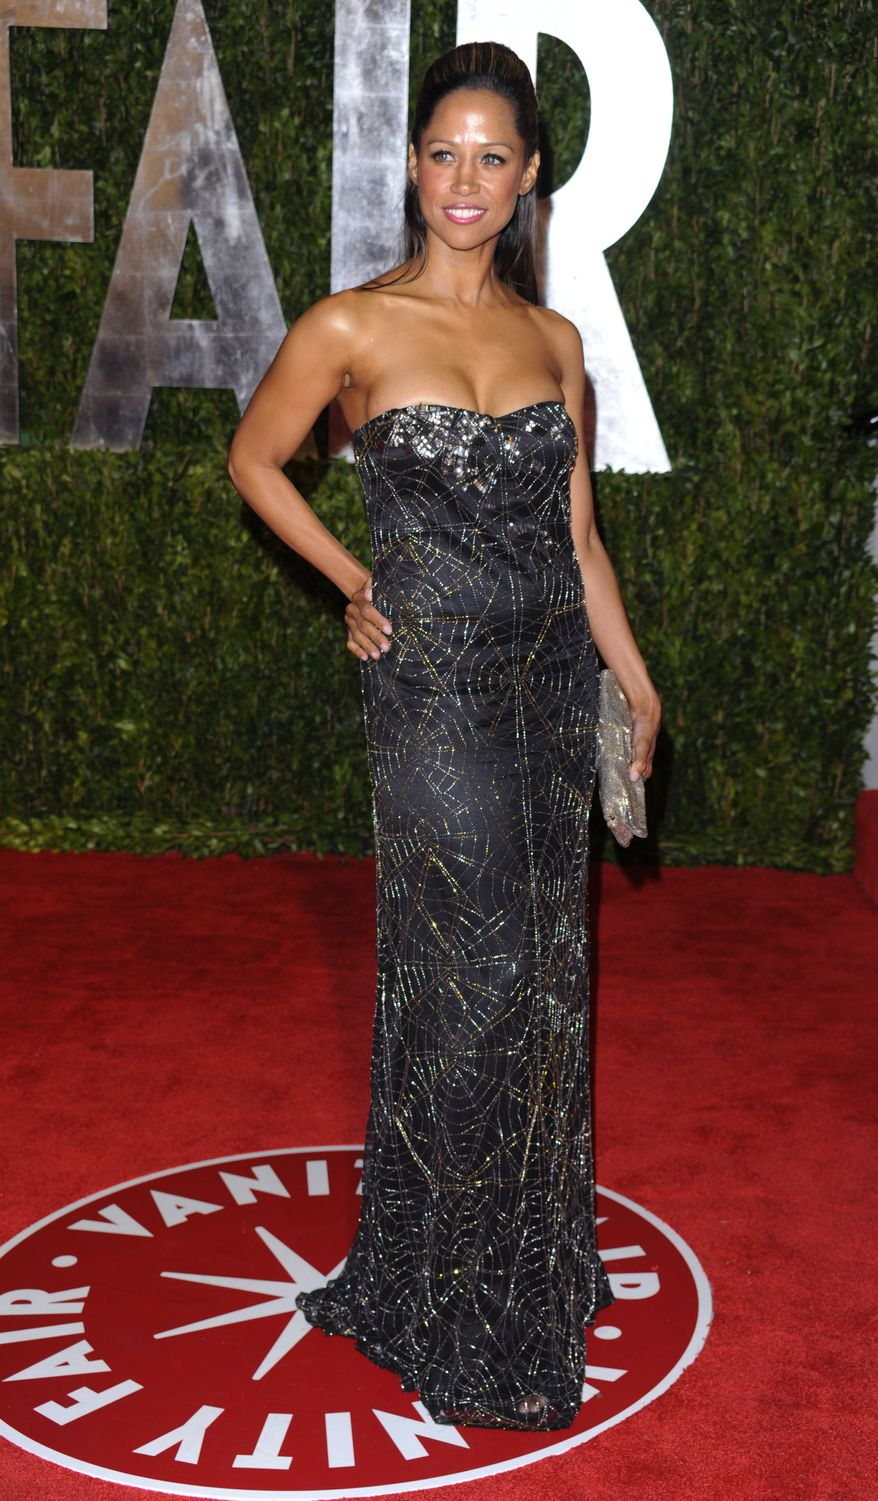 Stacey Dash arrives at the Vanity Fair Oscar party on Sunday, March 7, 2010, in West Hollywood, Calif. (AP Photo/Peter Kramer)